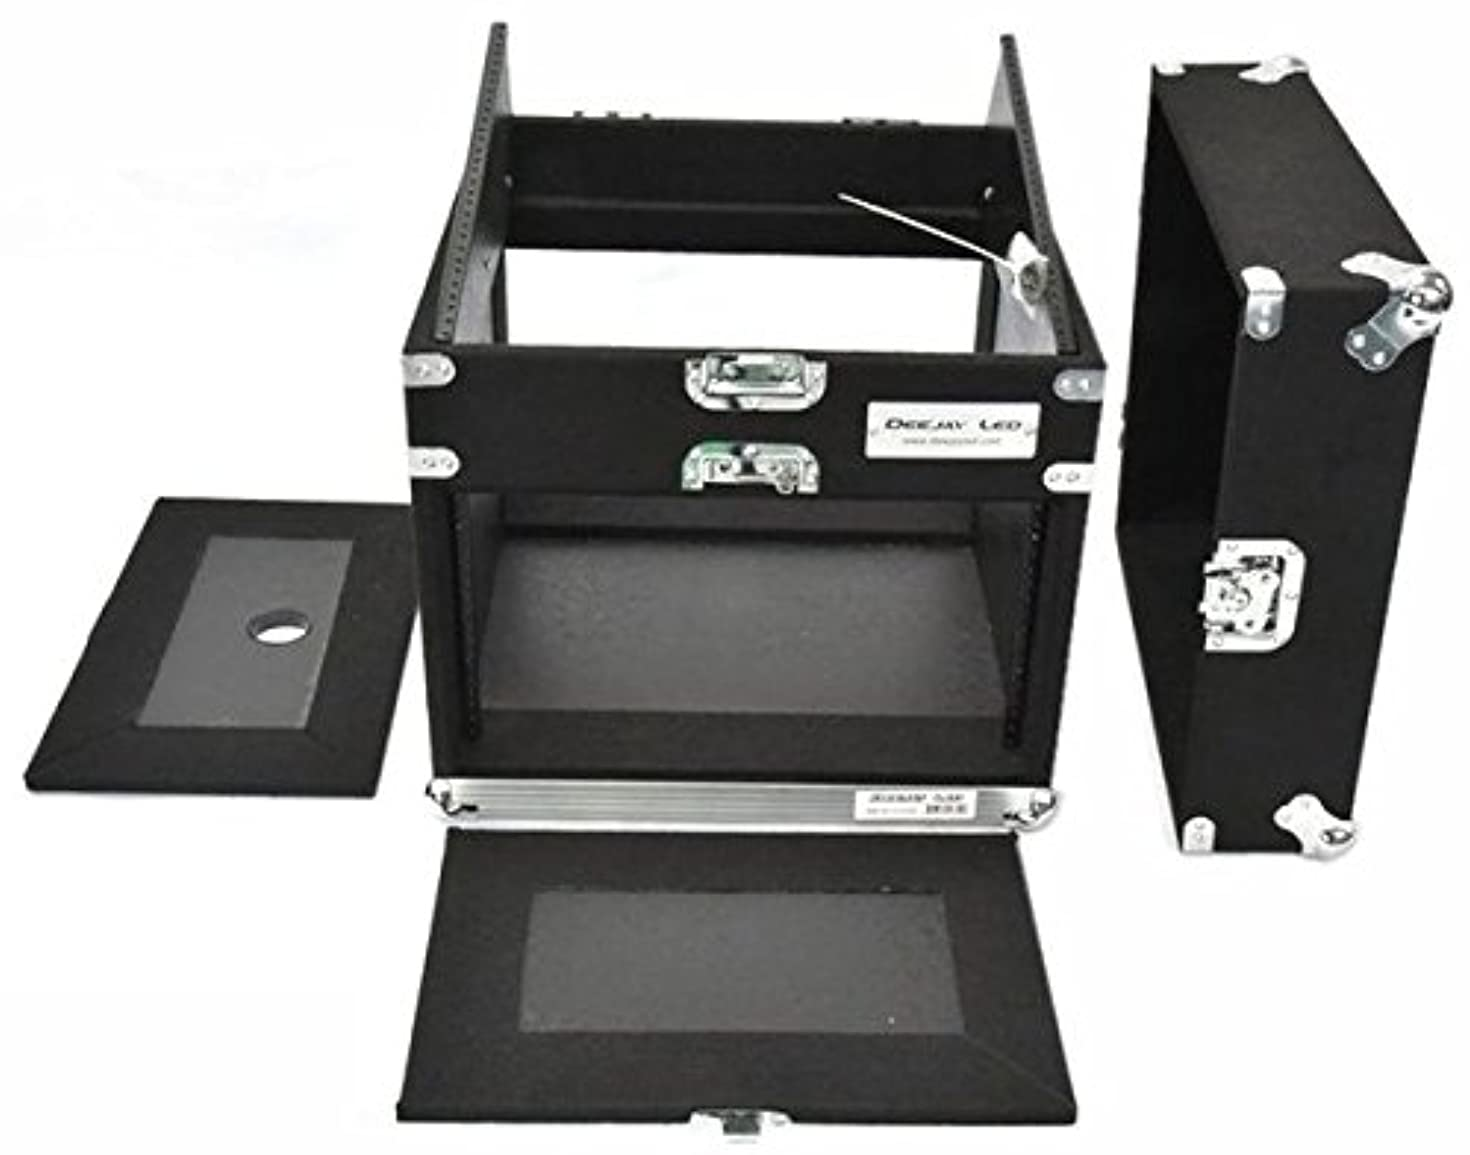 Professional 8u Amp Side 10u Mixer Side Lightweight And Durable Recessed Handles Portable Padlock Cabinet With Double Door, External Spring-loaded Handles DEEJAY LED TBH8U10SLANTWOOD